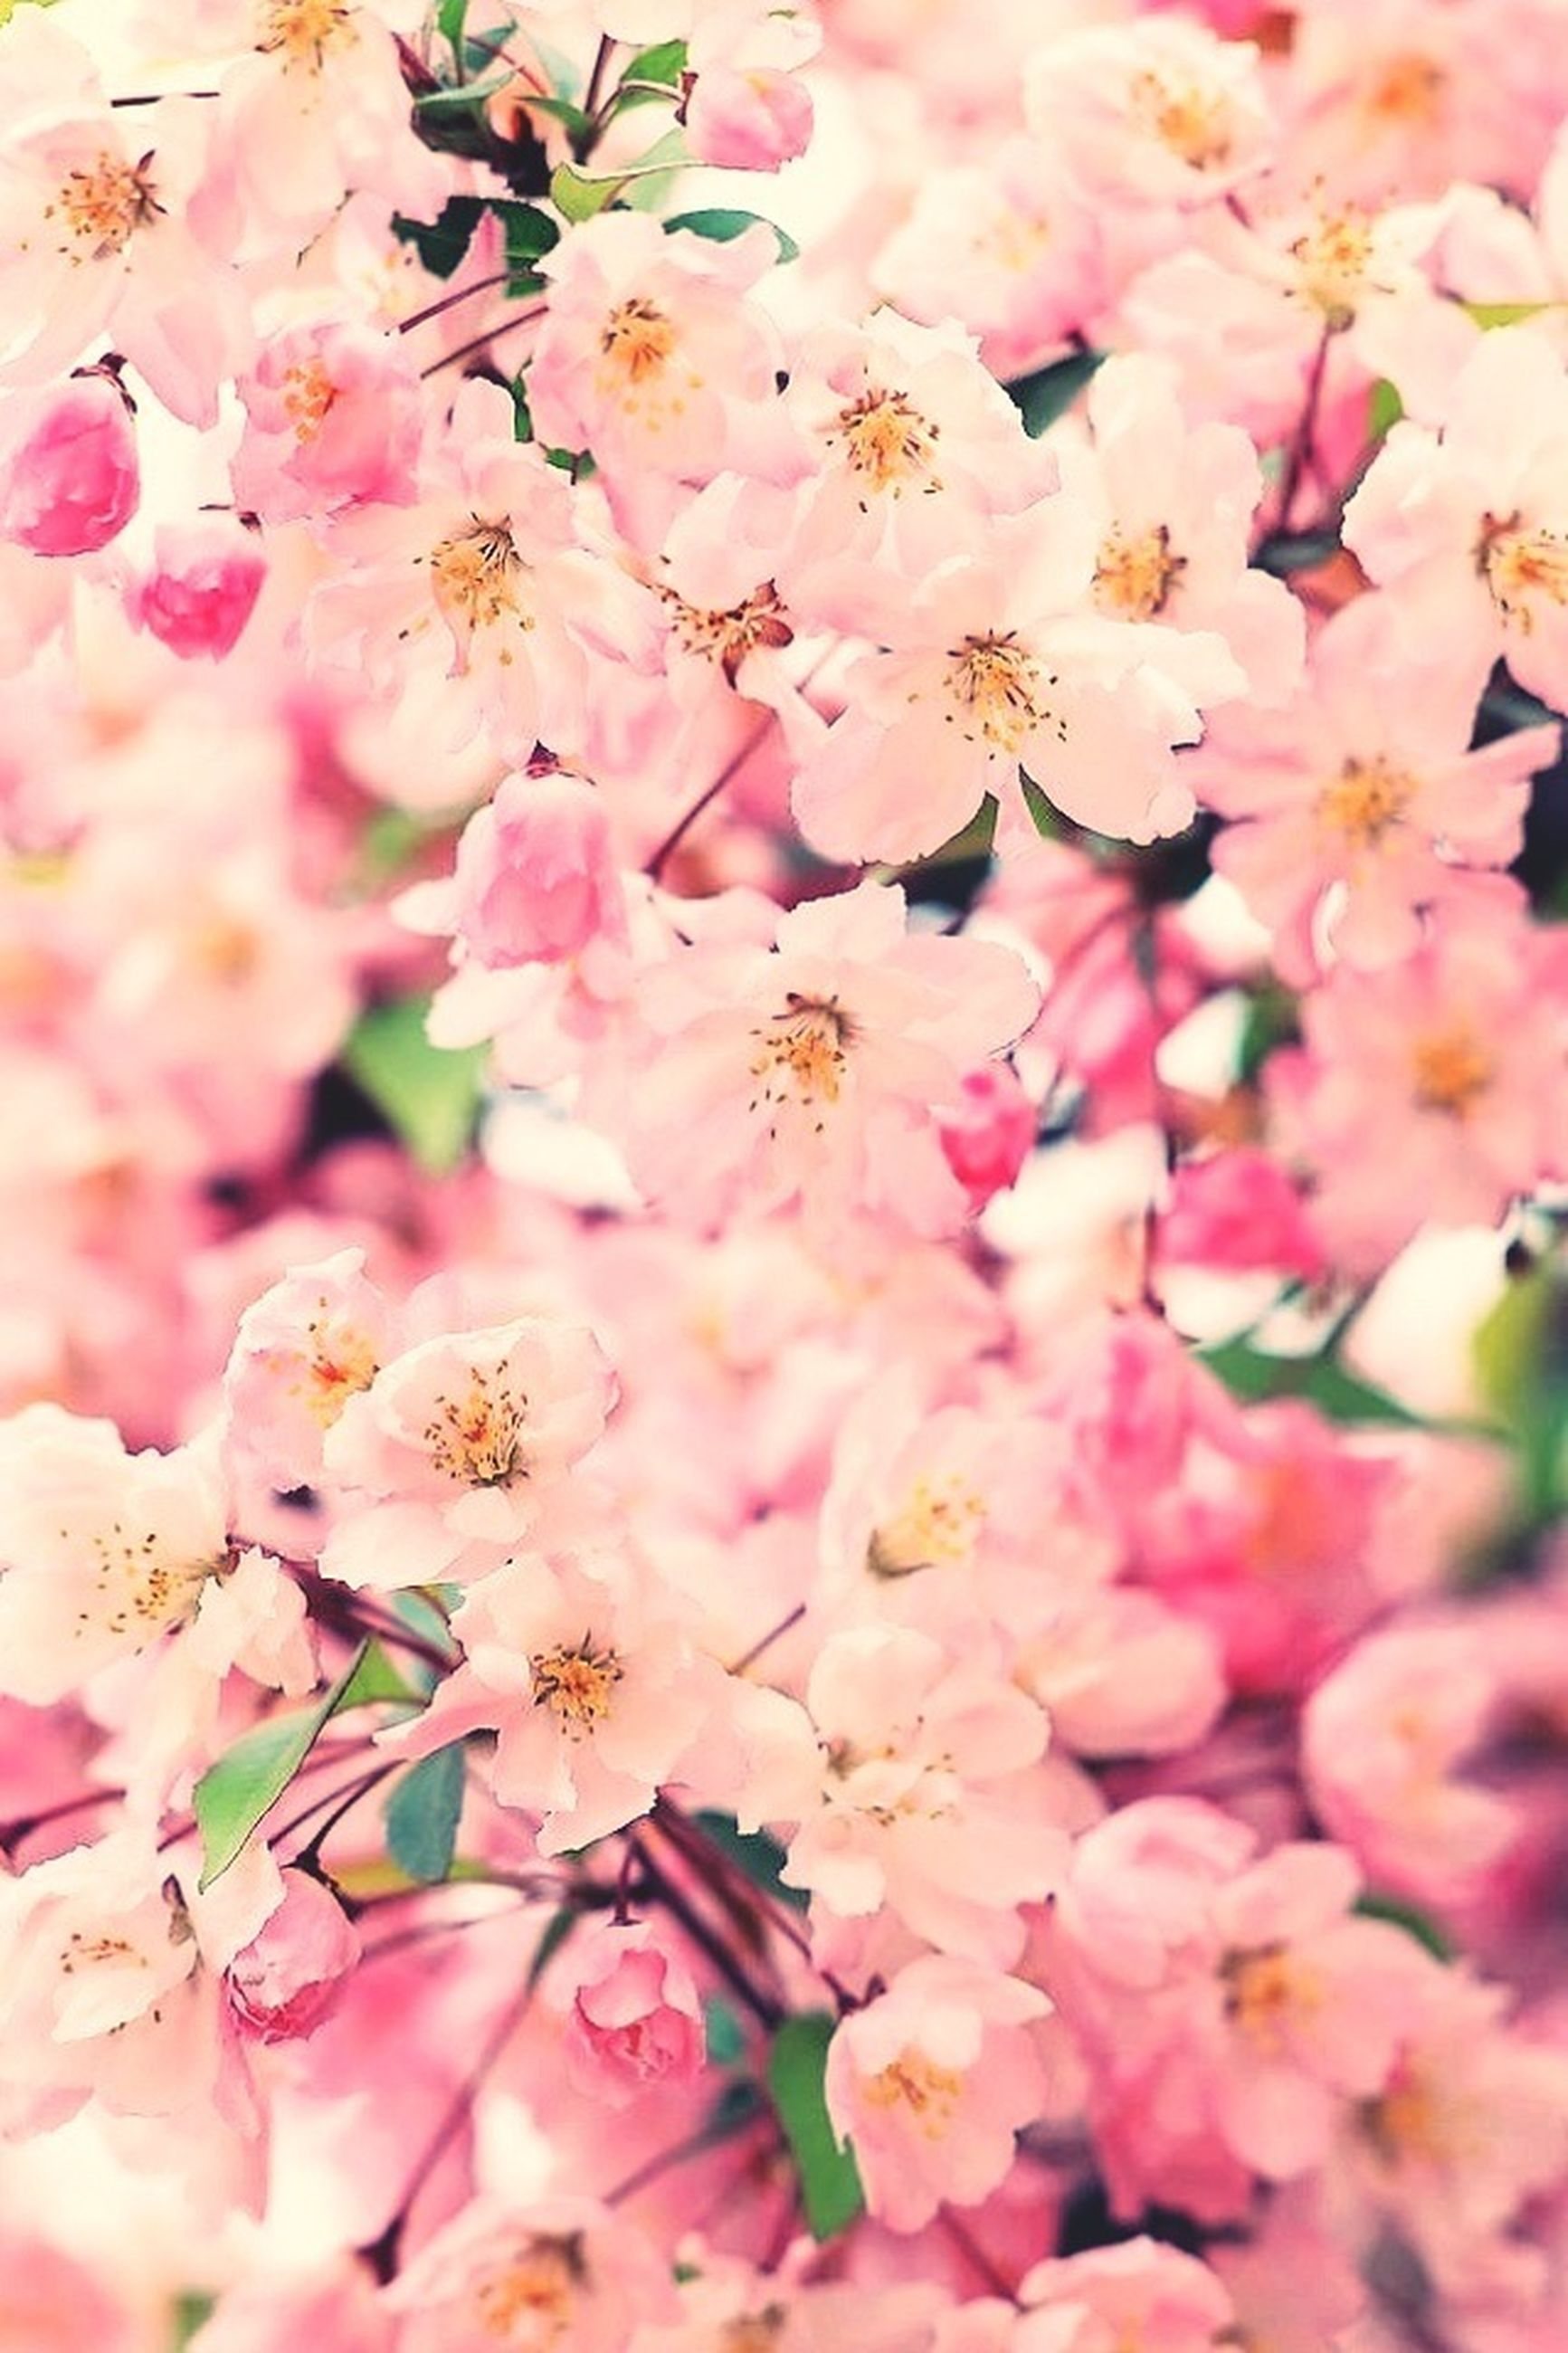 flower, freshness, fragility, growth, beauty in nature, petal, nature, pink color, blossom, close-up, flower head, in bloom, blooming, full frame, backgrounds, cherry blossom, branch, stamen, springtime, selective focus